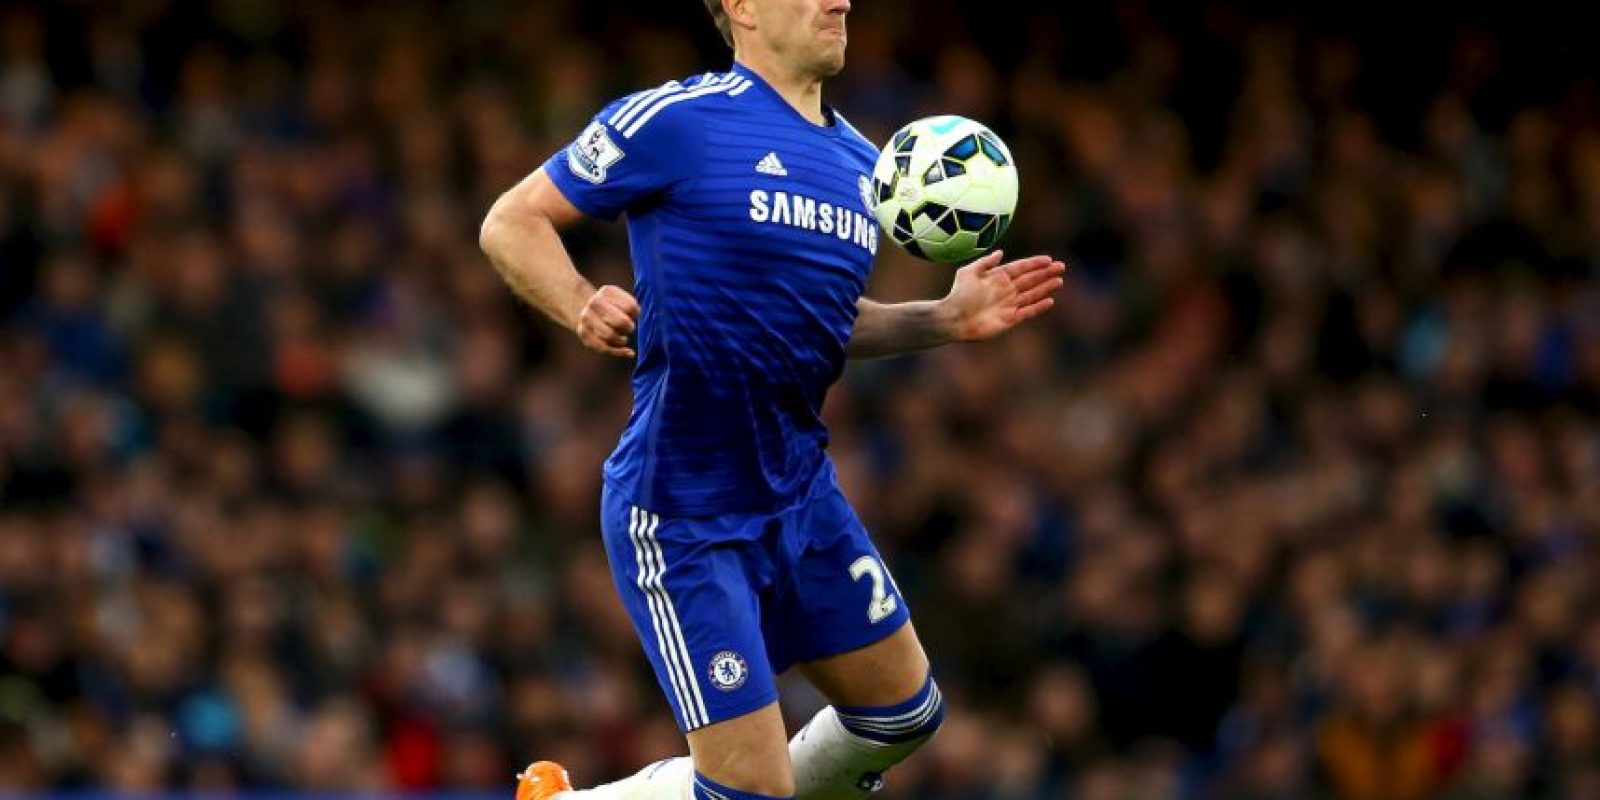 La defensa estaría formada por John Terry (Chelsea) Foto: Getty Images